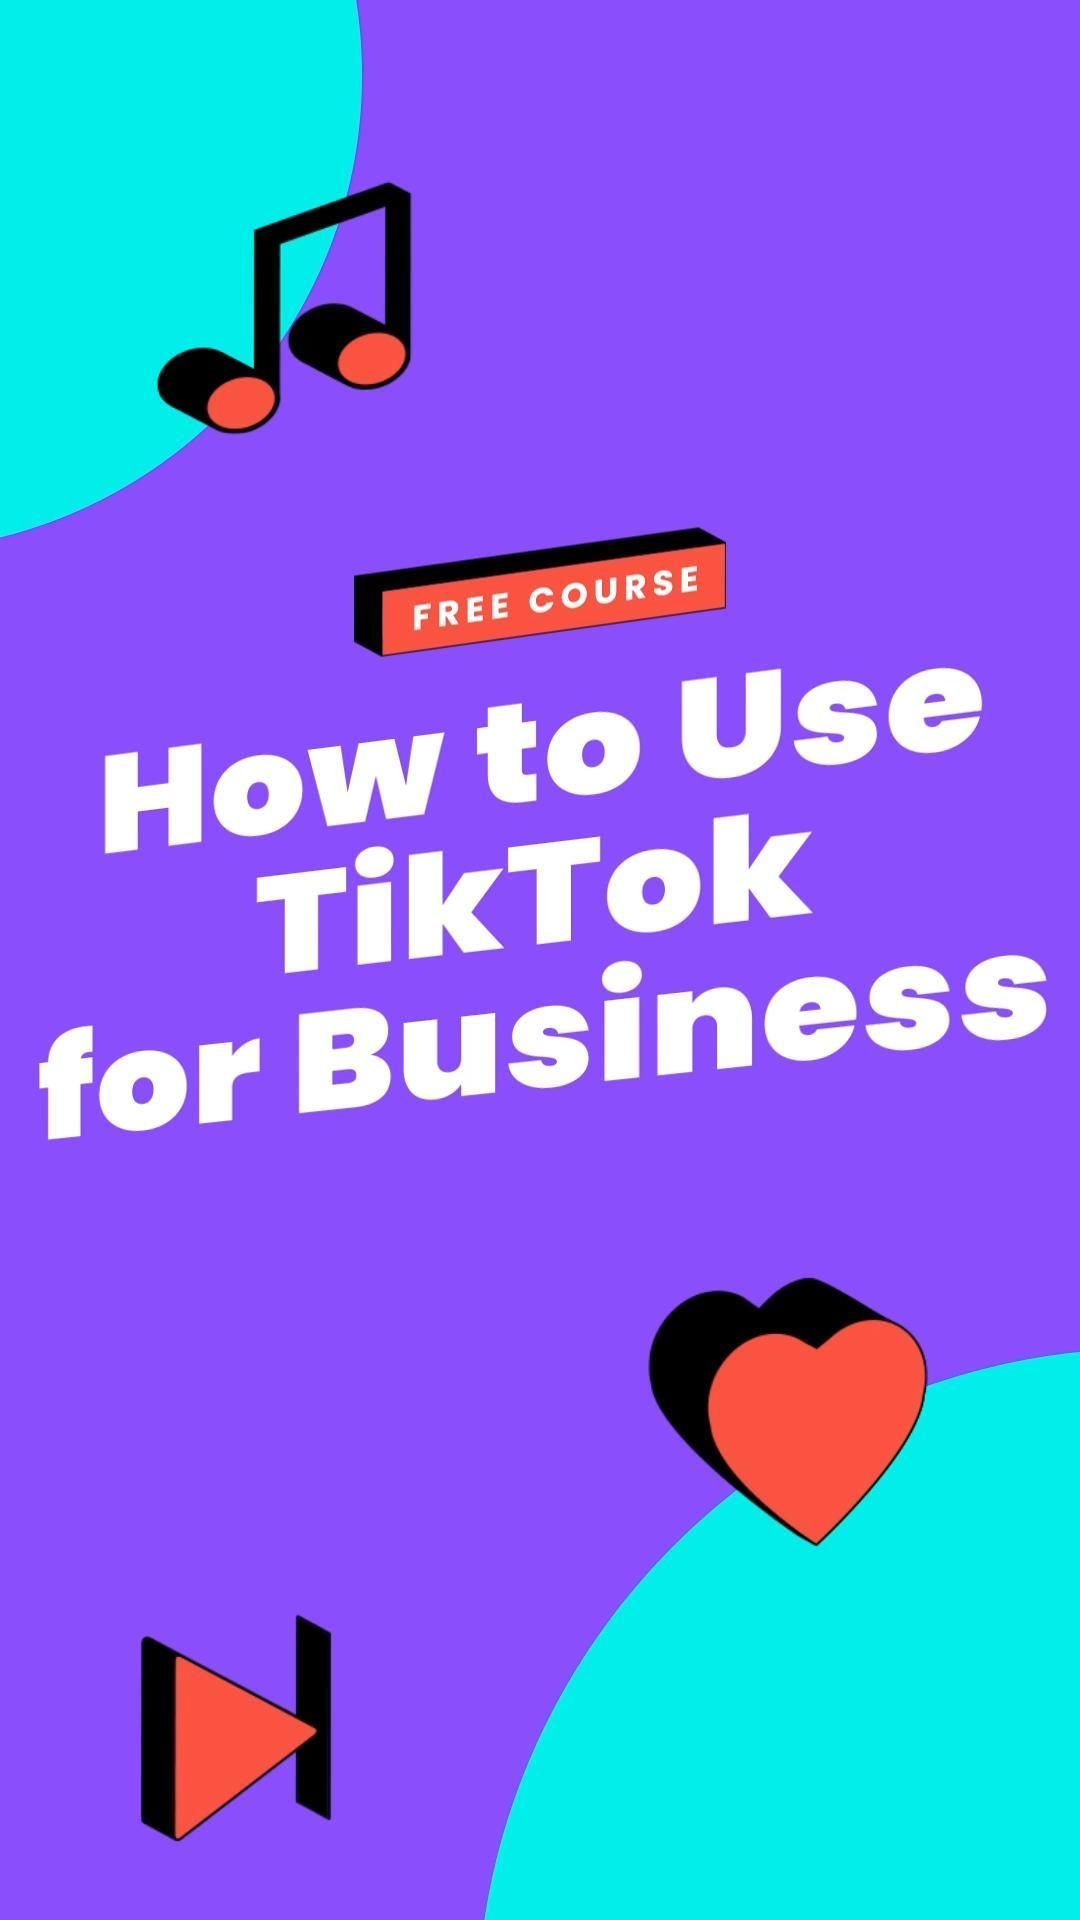 Small Business Discover How To Use Tiktok For Business Not Sure Where To Start With Ti Marketing Strategy Business Network Marketing Business Content Marketing